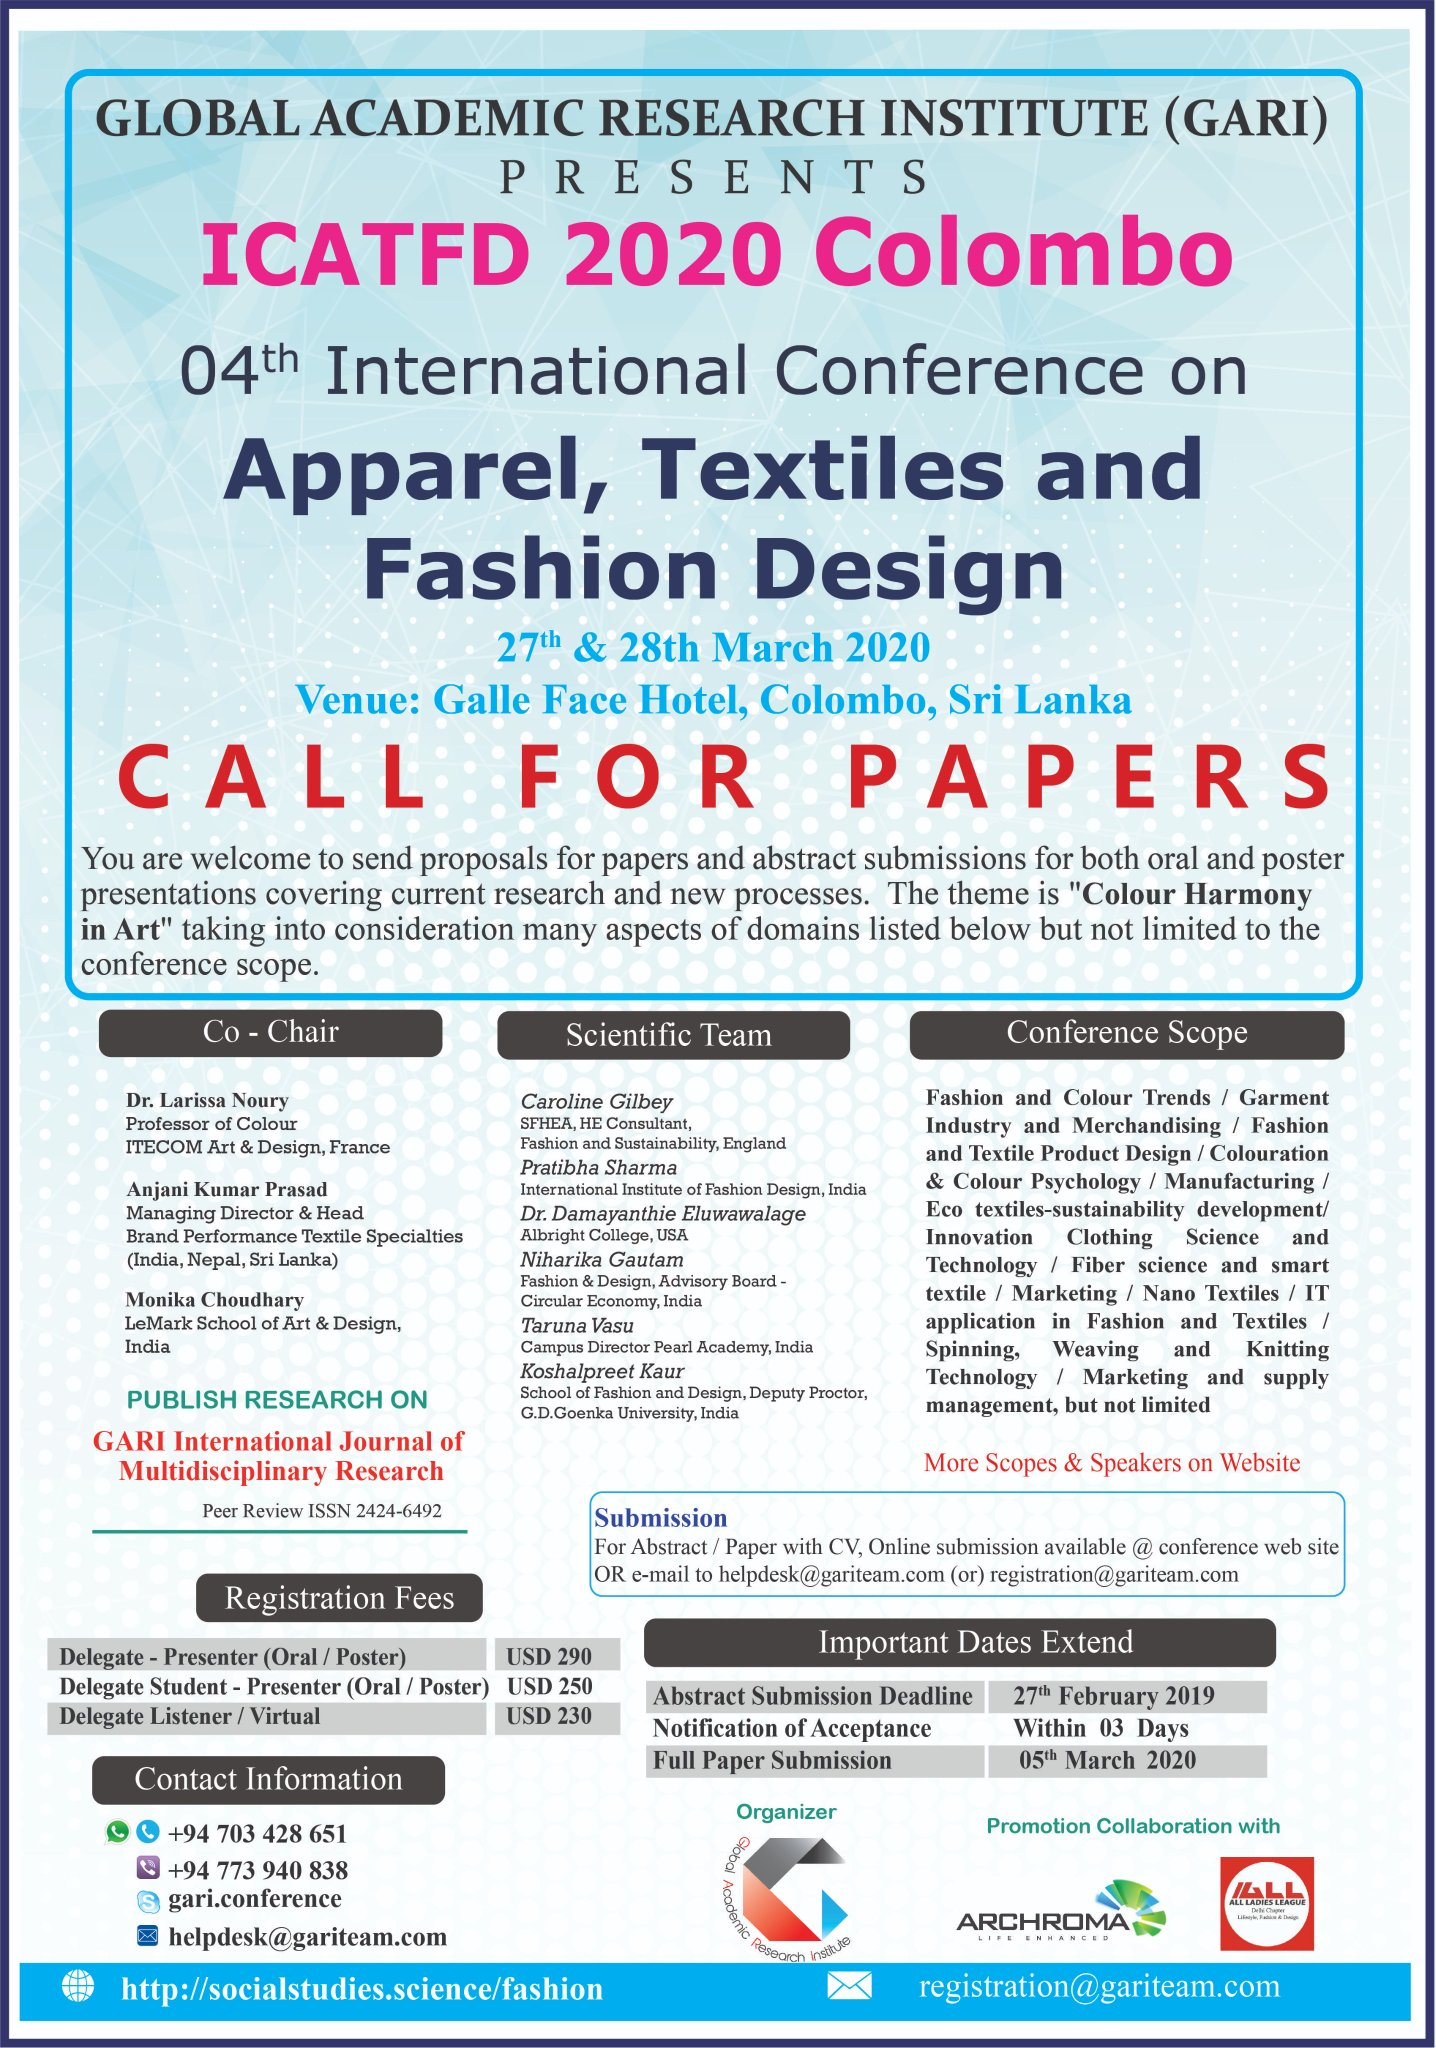 Gari Conference On Twitter Call For Papers Https T Co Gat9k4v41m Fashion Textileindustry Apparel Conference